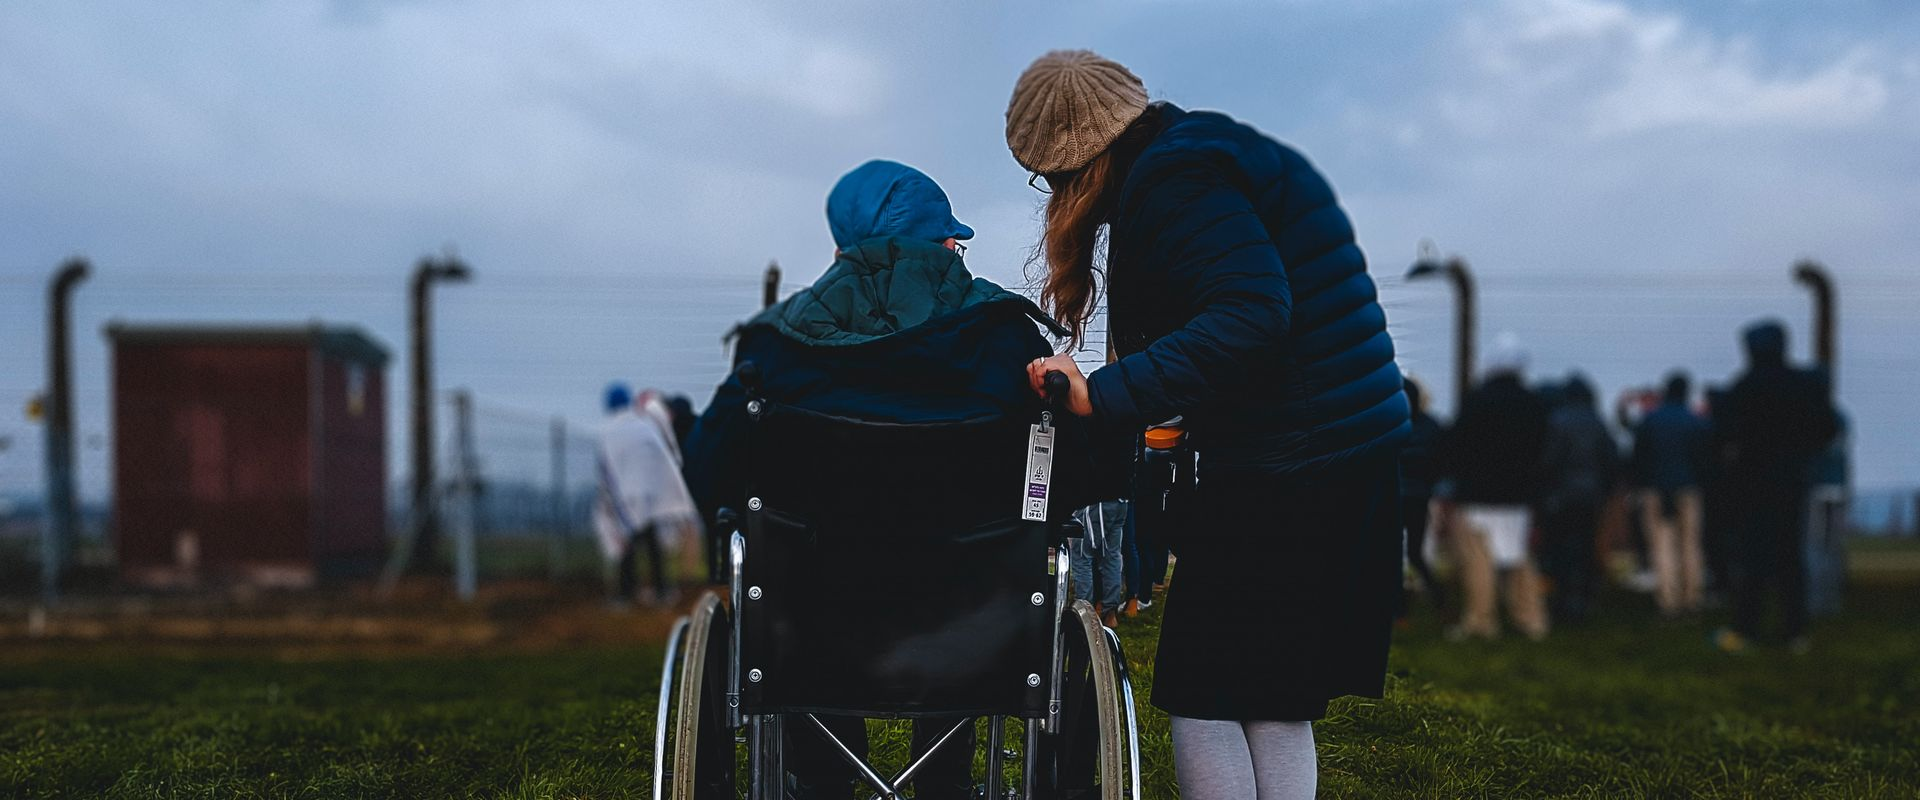 women standing and woman in wheelchair